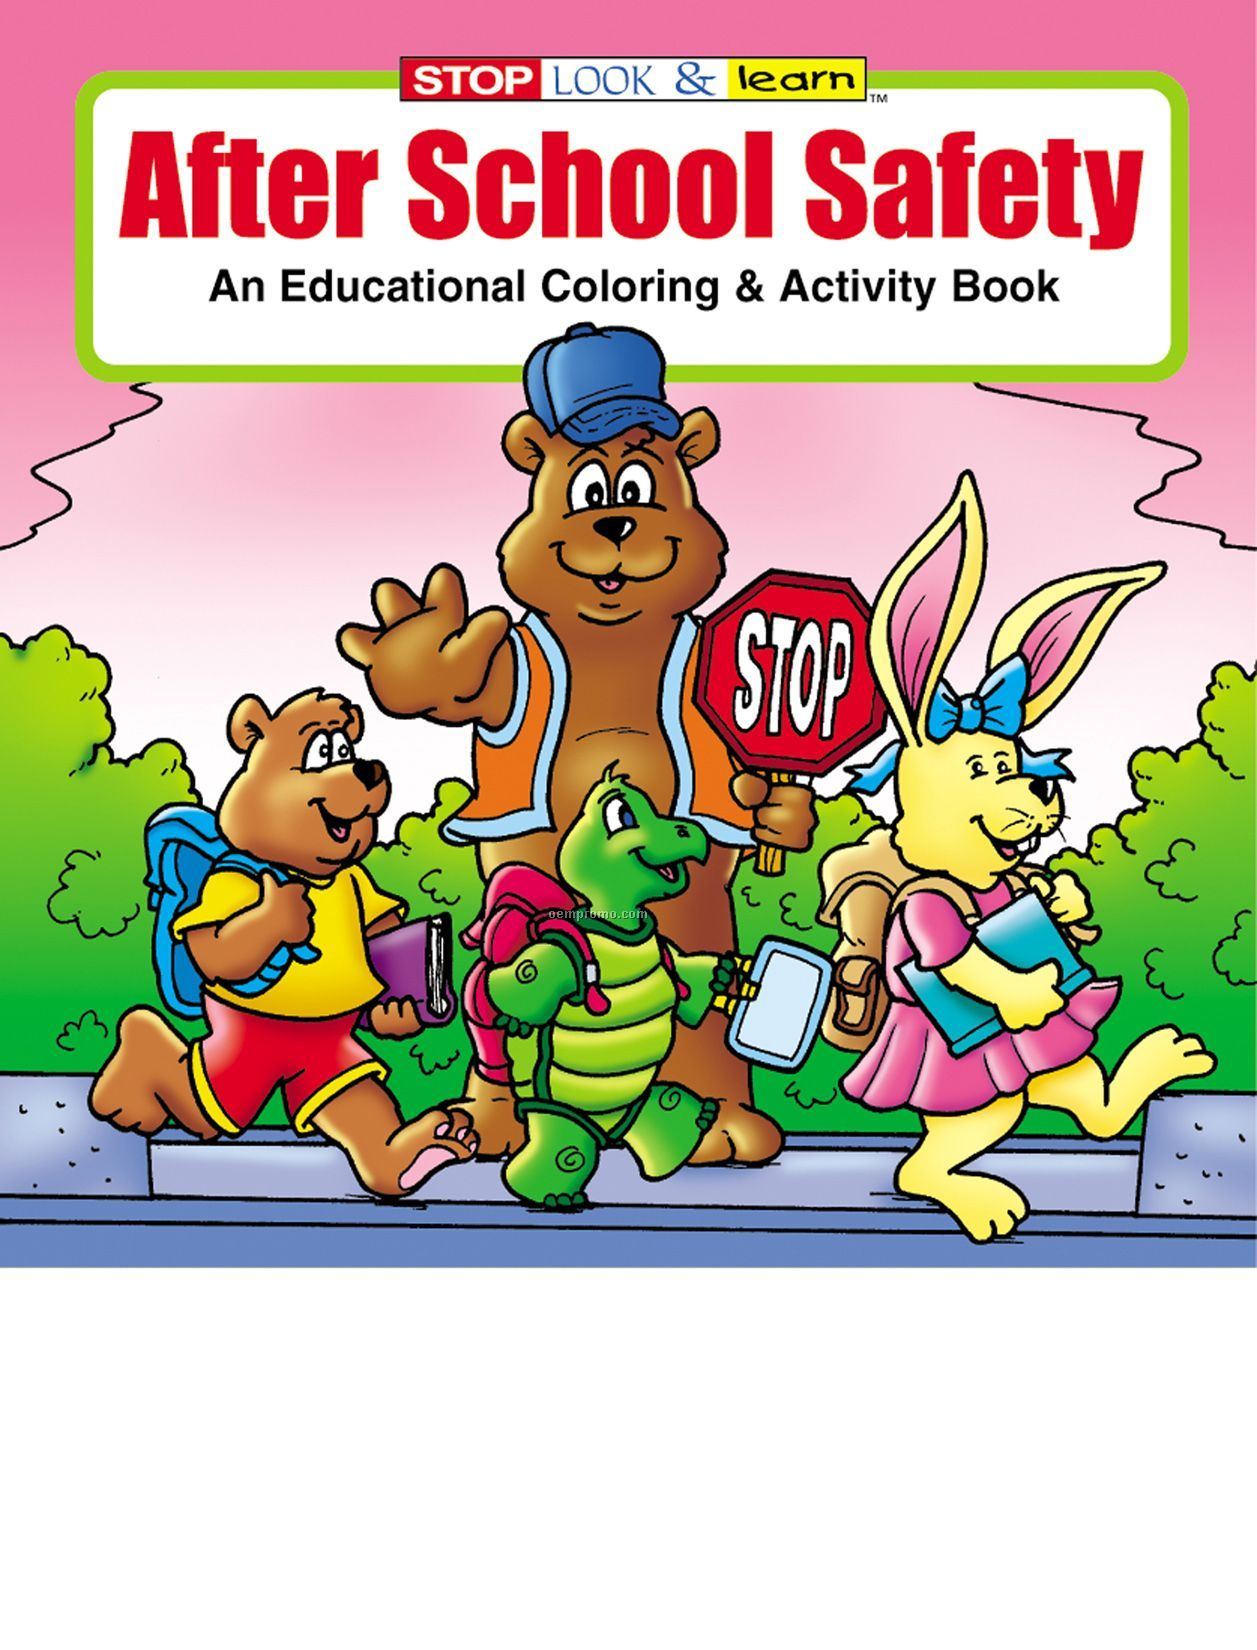 After School Safety Coloring Book Fun Pack